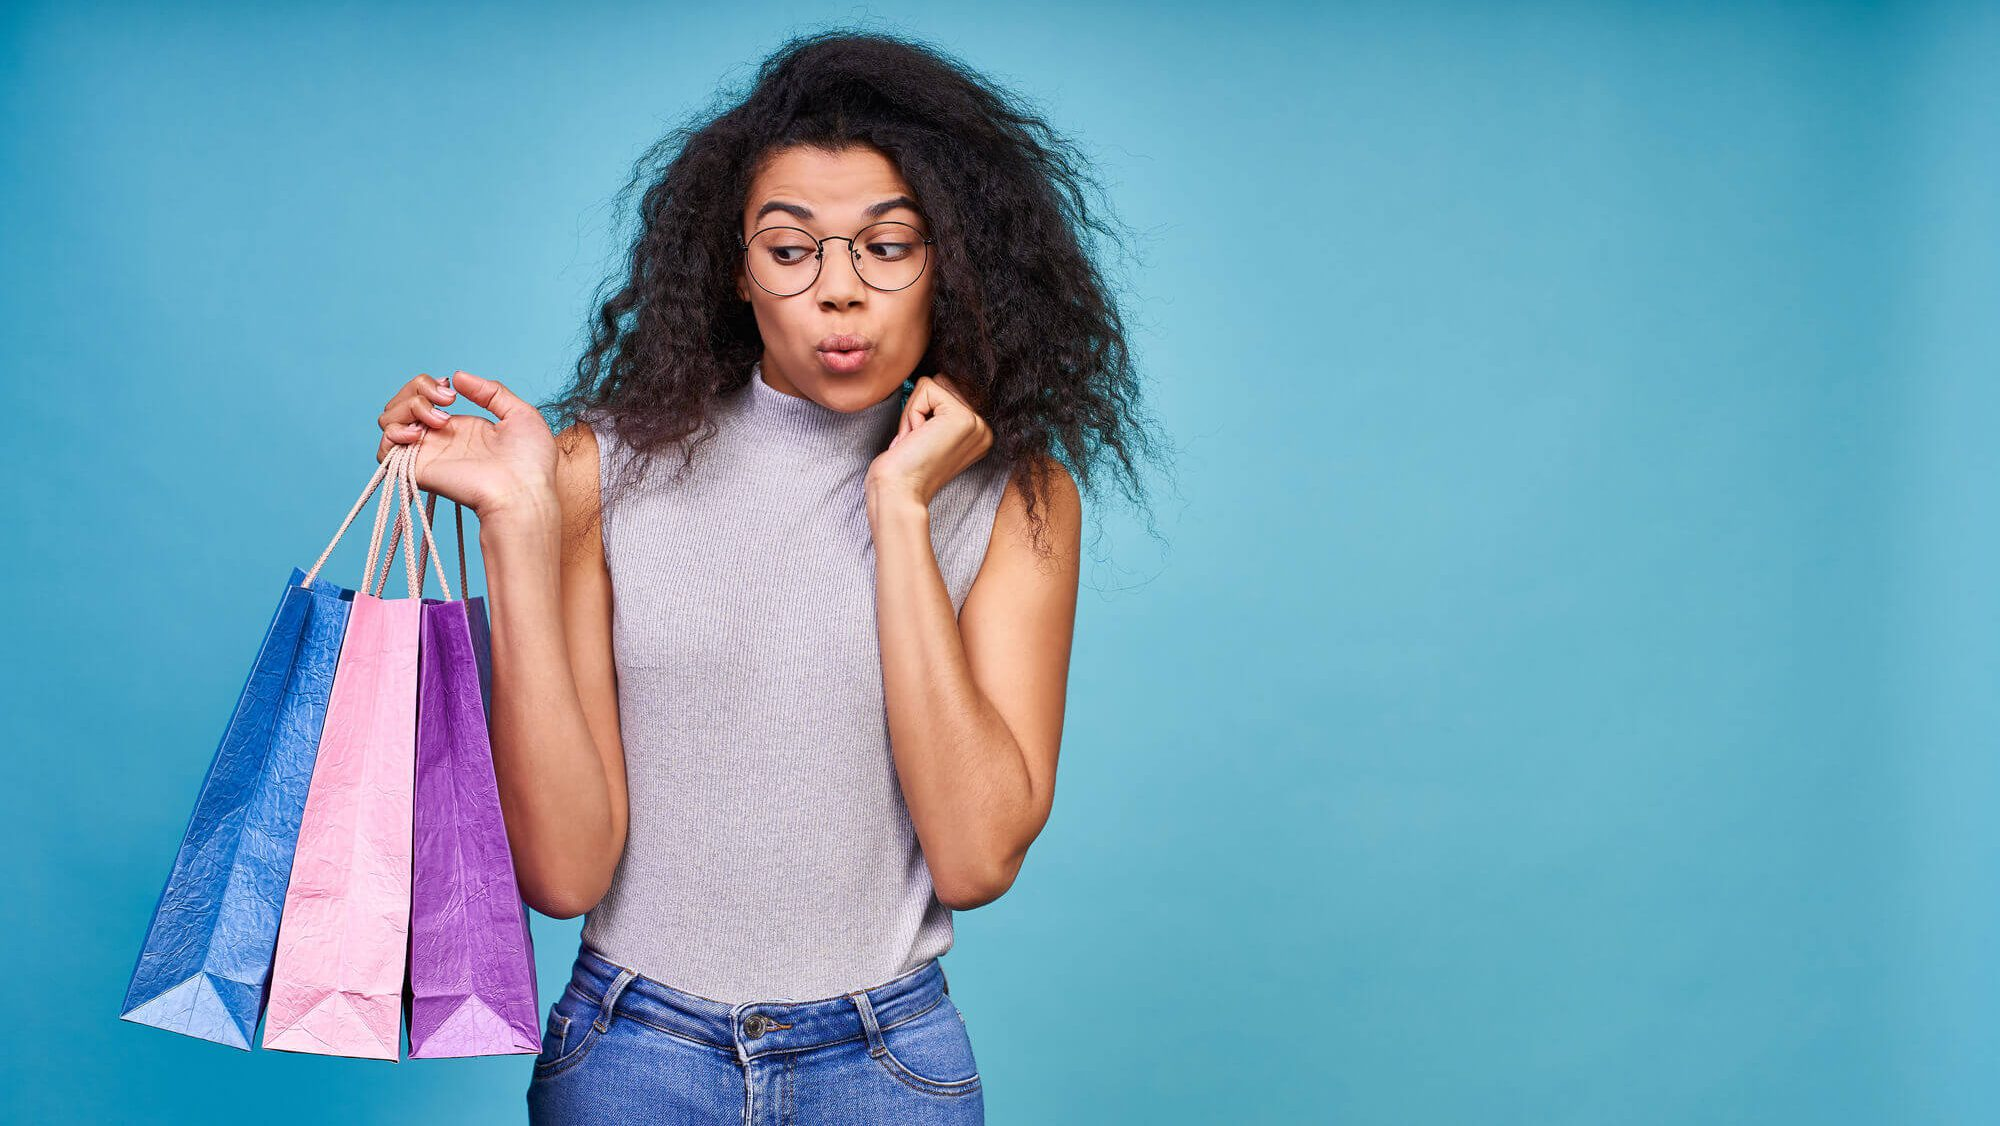 5 Things to Avoid to Save Money